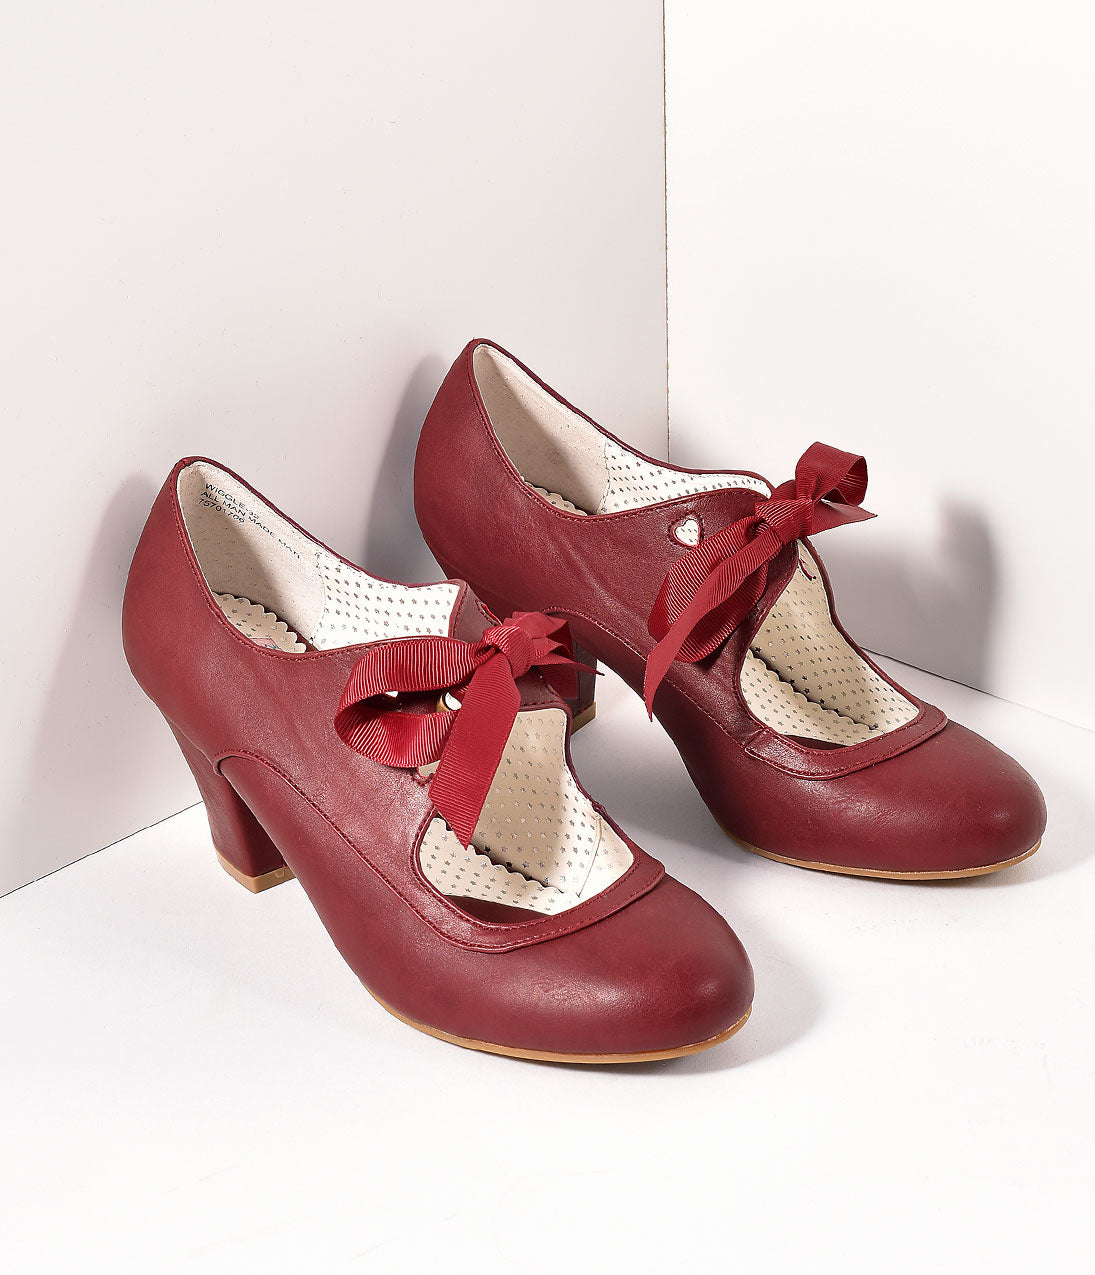 1950s Shoe Styles: Heels, Flats, Sandals, Saddles Shoes Vintage Style Burgundy Leatherette Mary Jane Bow Wiggle Heels $58.00 AT vintagedancer.com